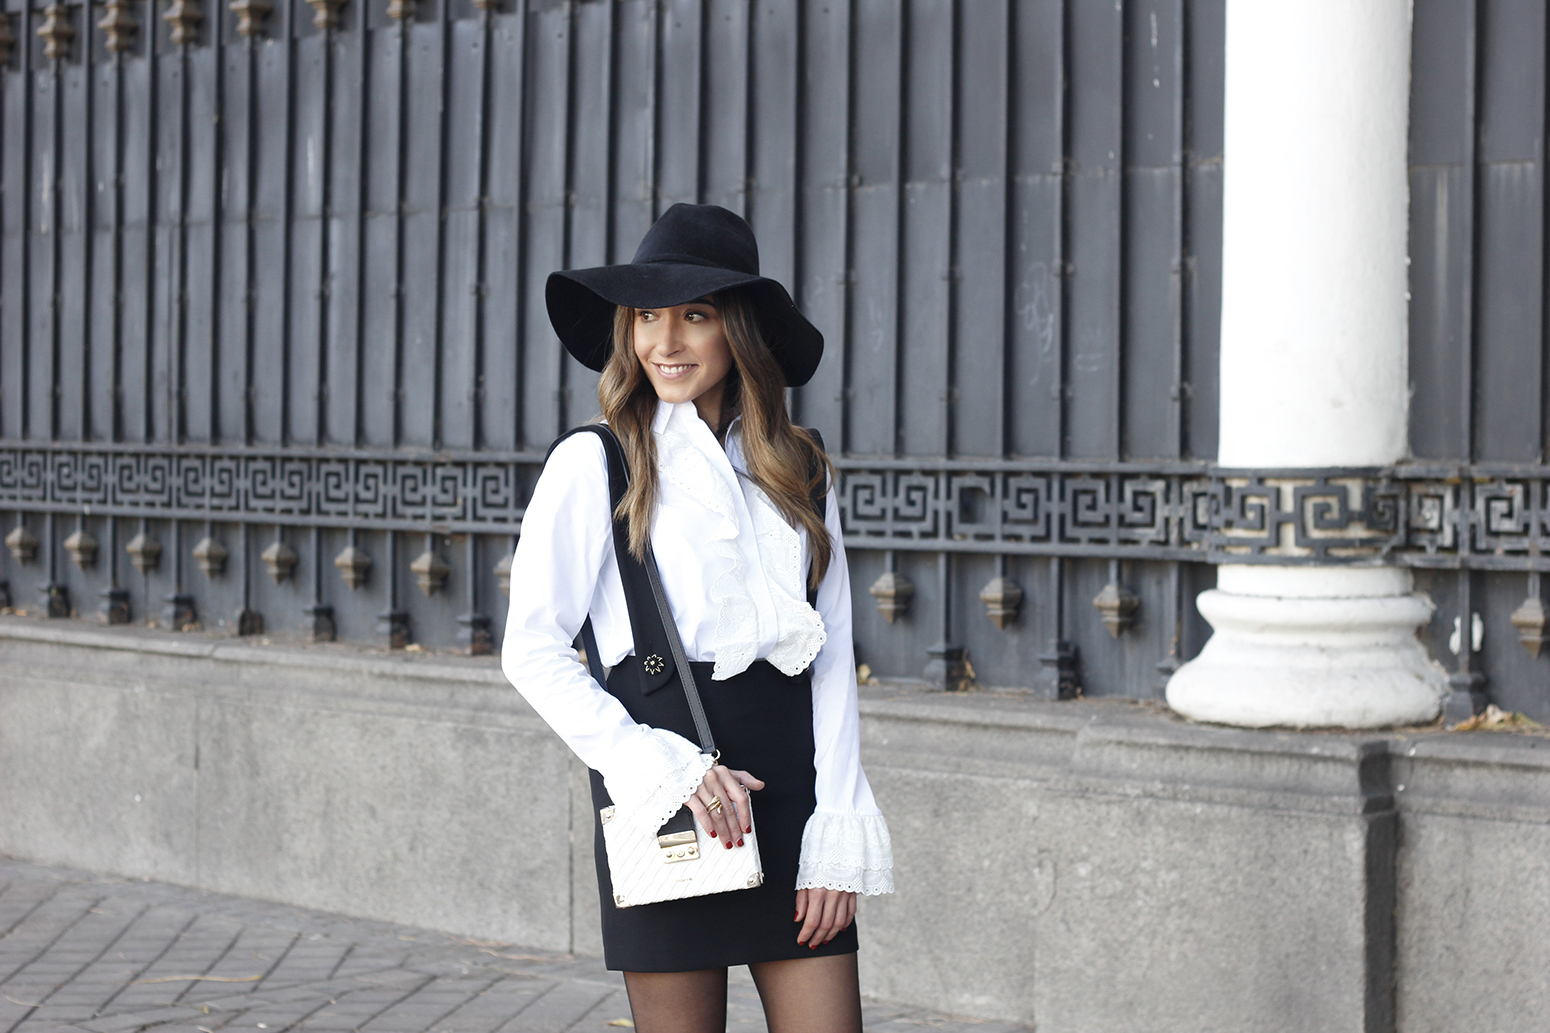 black skirt white shirt black and white outfit trend inspiration hat style fall look blanco y negro08